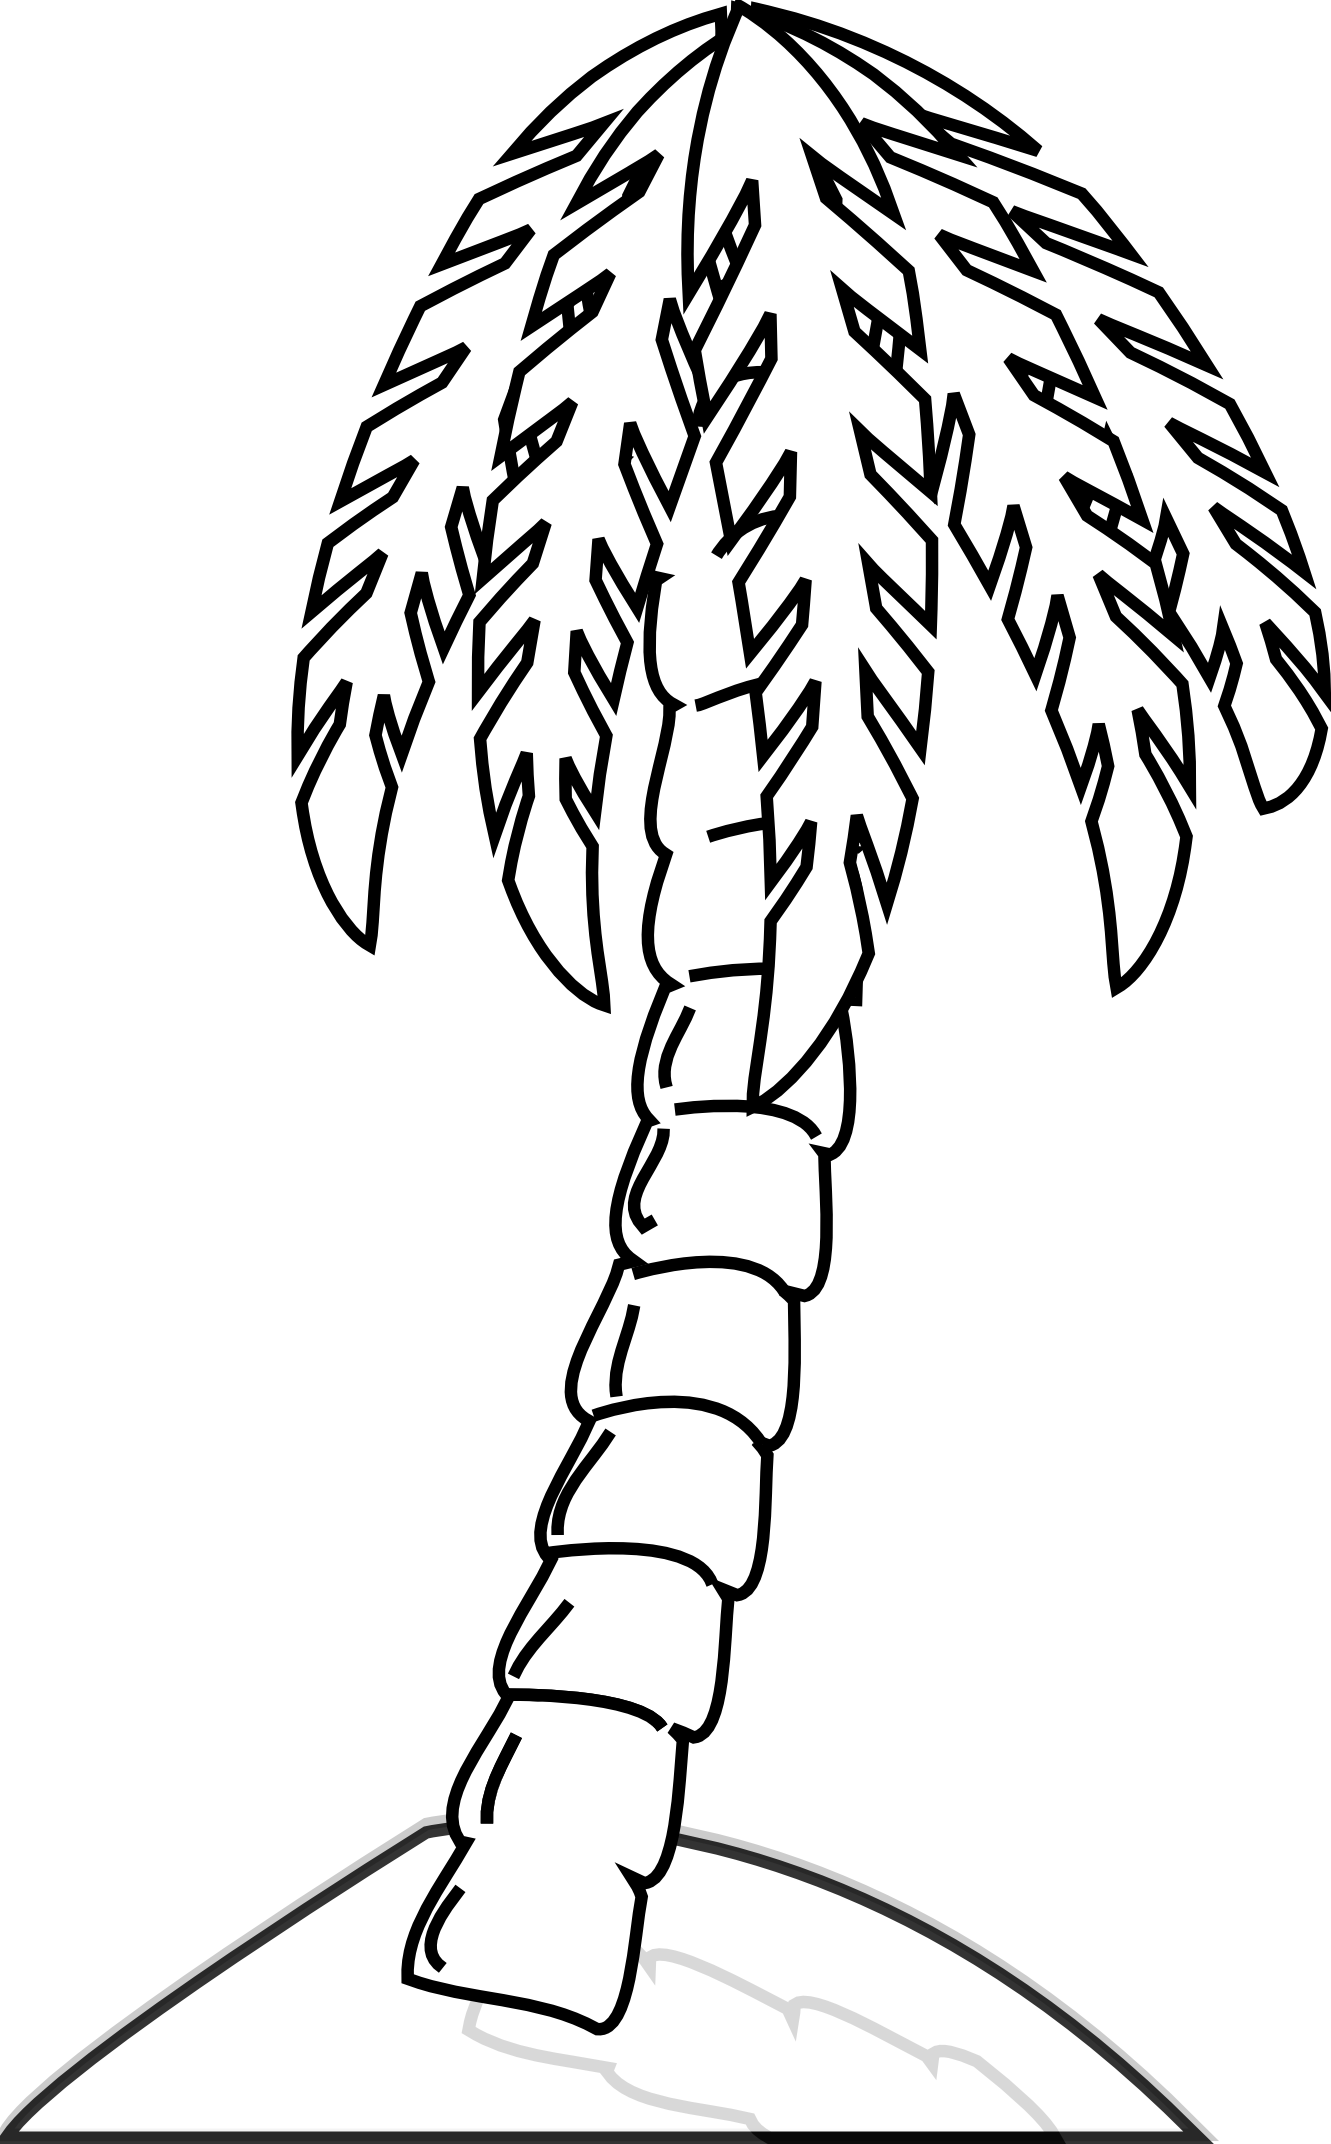 Banana tree clipart black and white clipart library stock 28+ Collection of Banana Tree Line Drawing | High quality, free ... clipart library stock